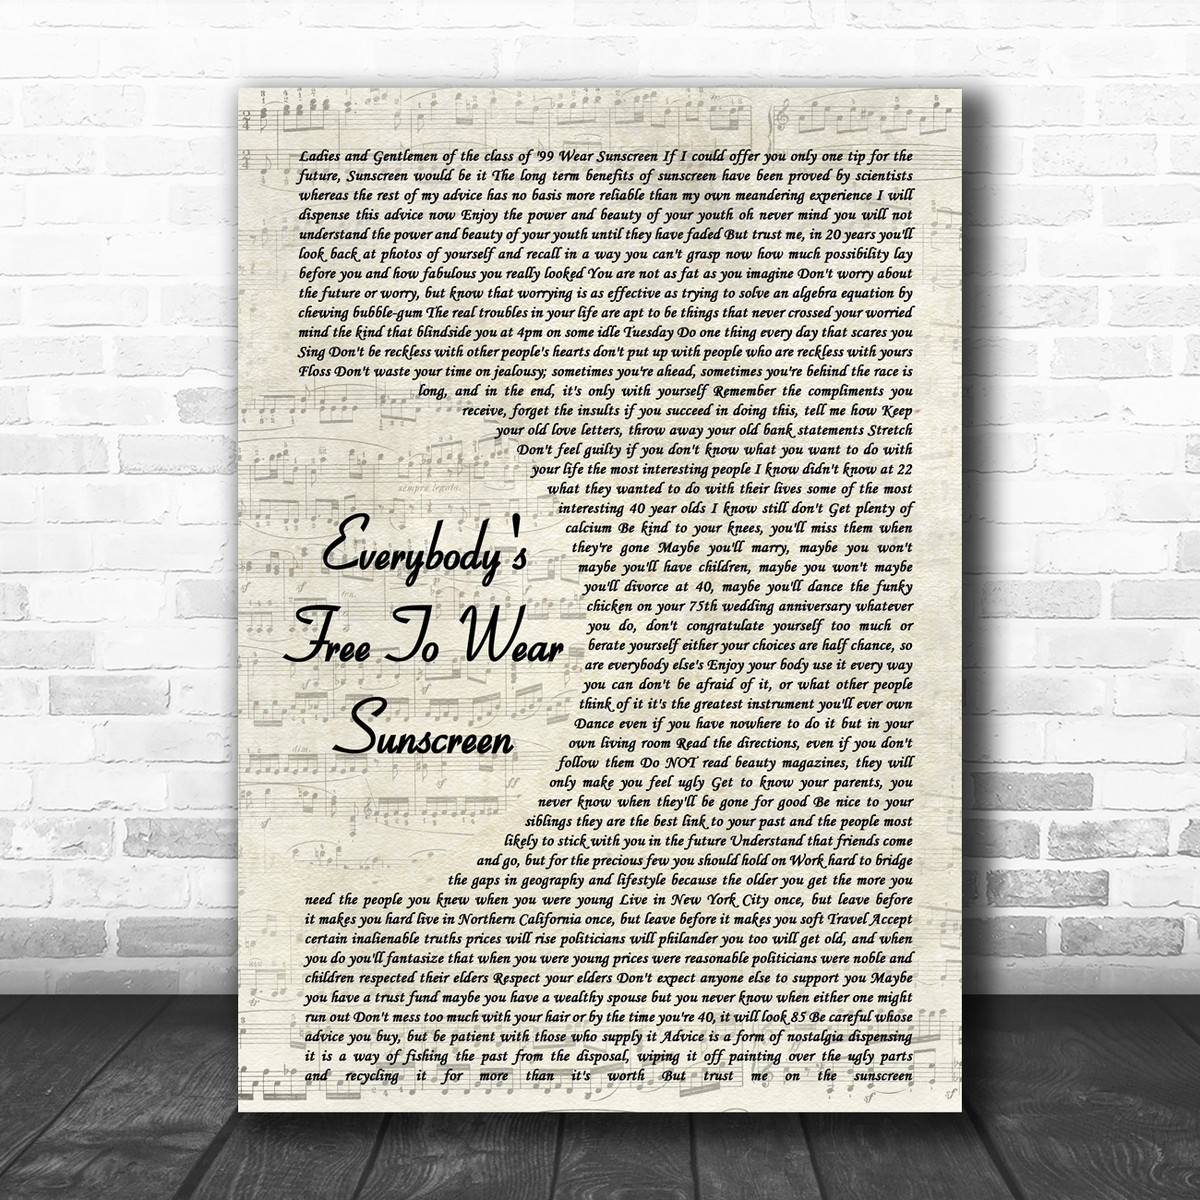 Baz Luhrmann Everybodys Free To Wear Sunscreen Vintage Script Song Lyric Poster Print